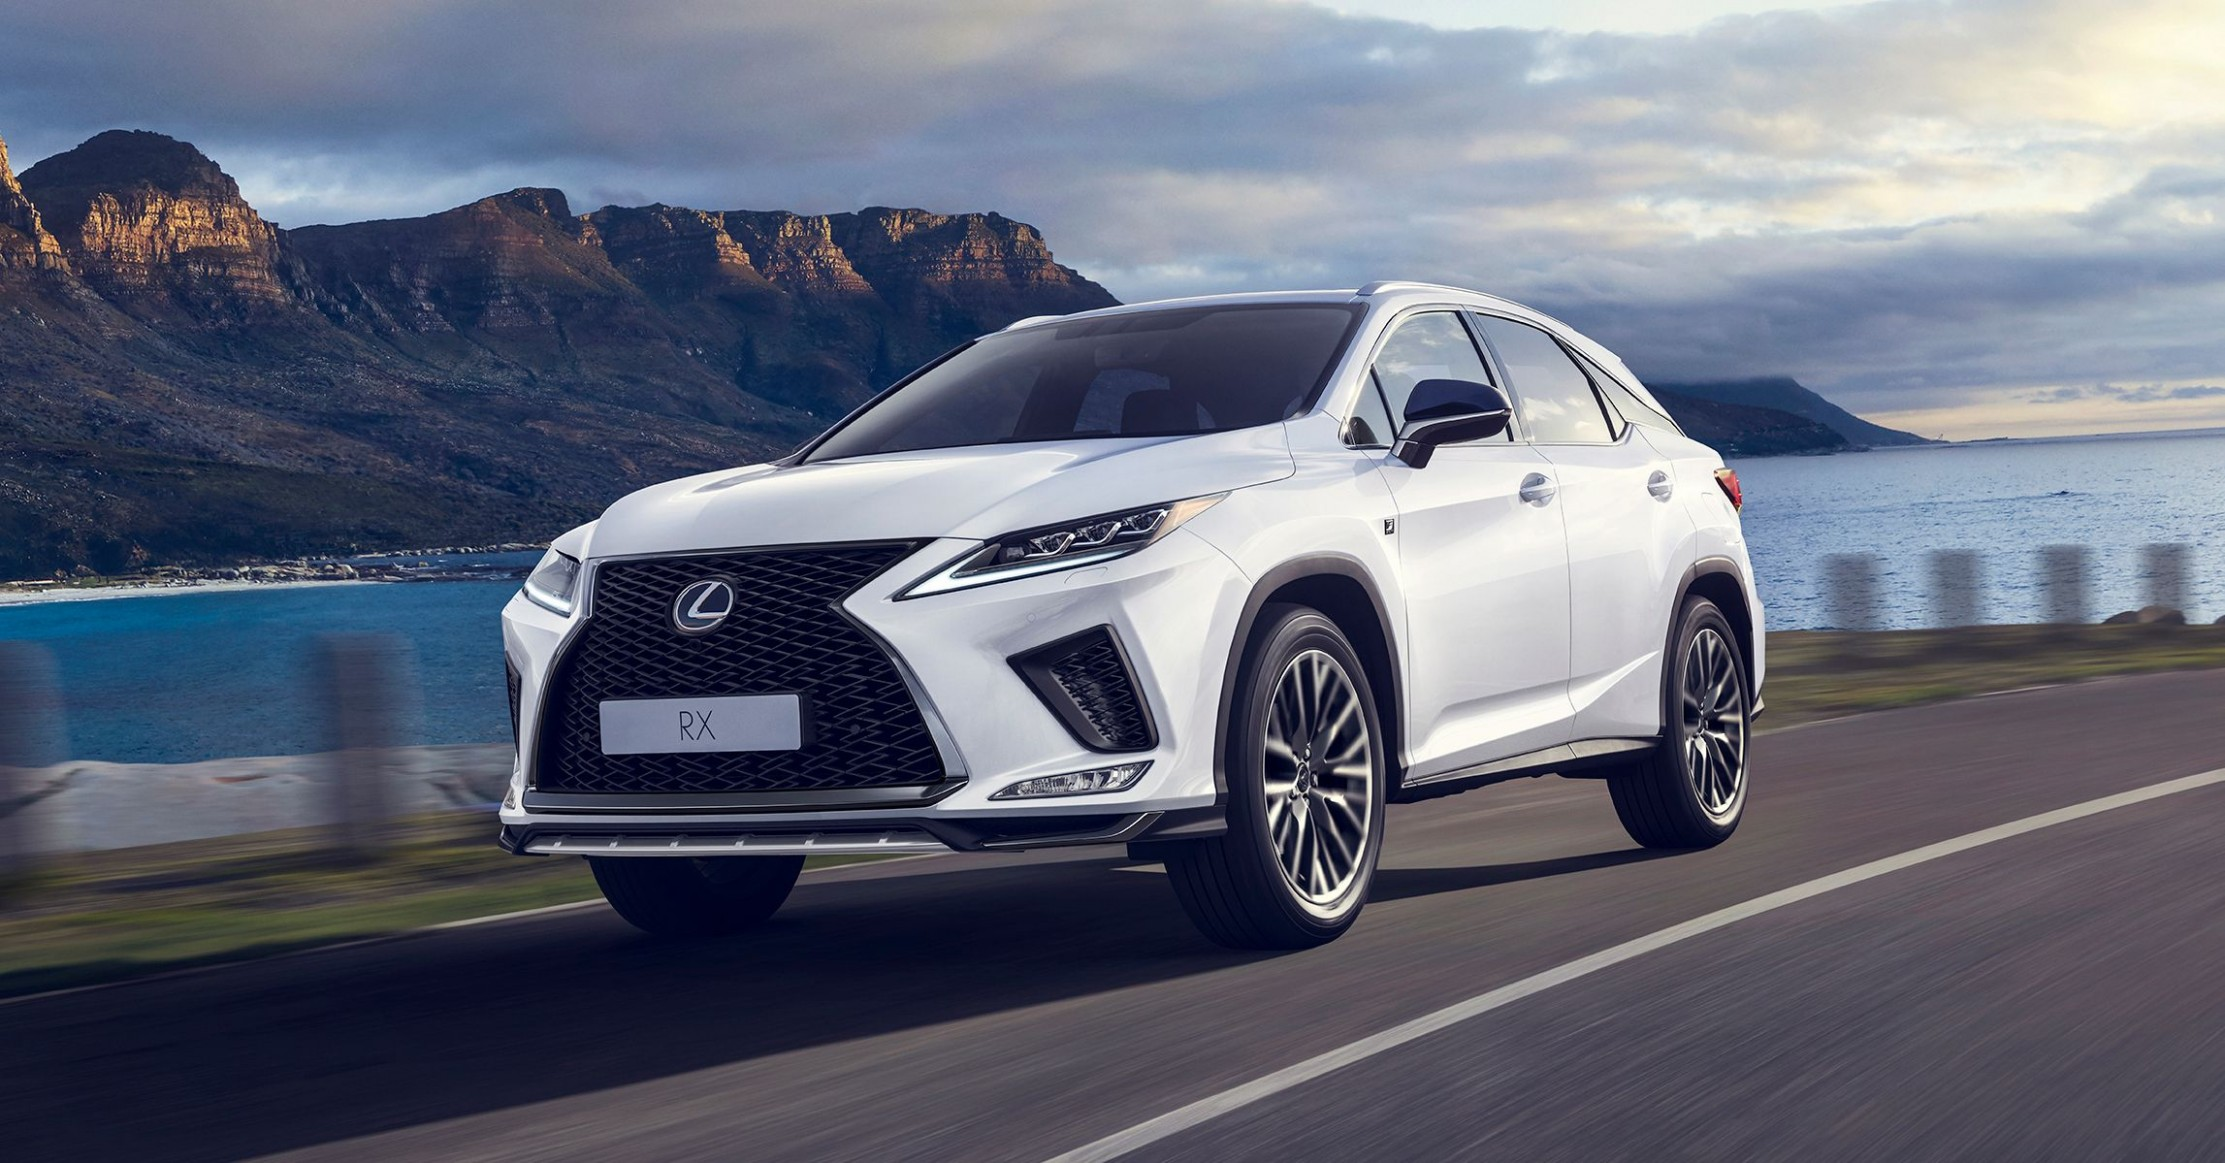 3 Lexus RX Review, Pricing, and Specs